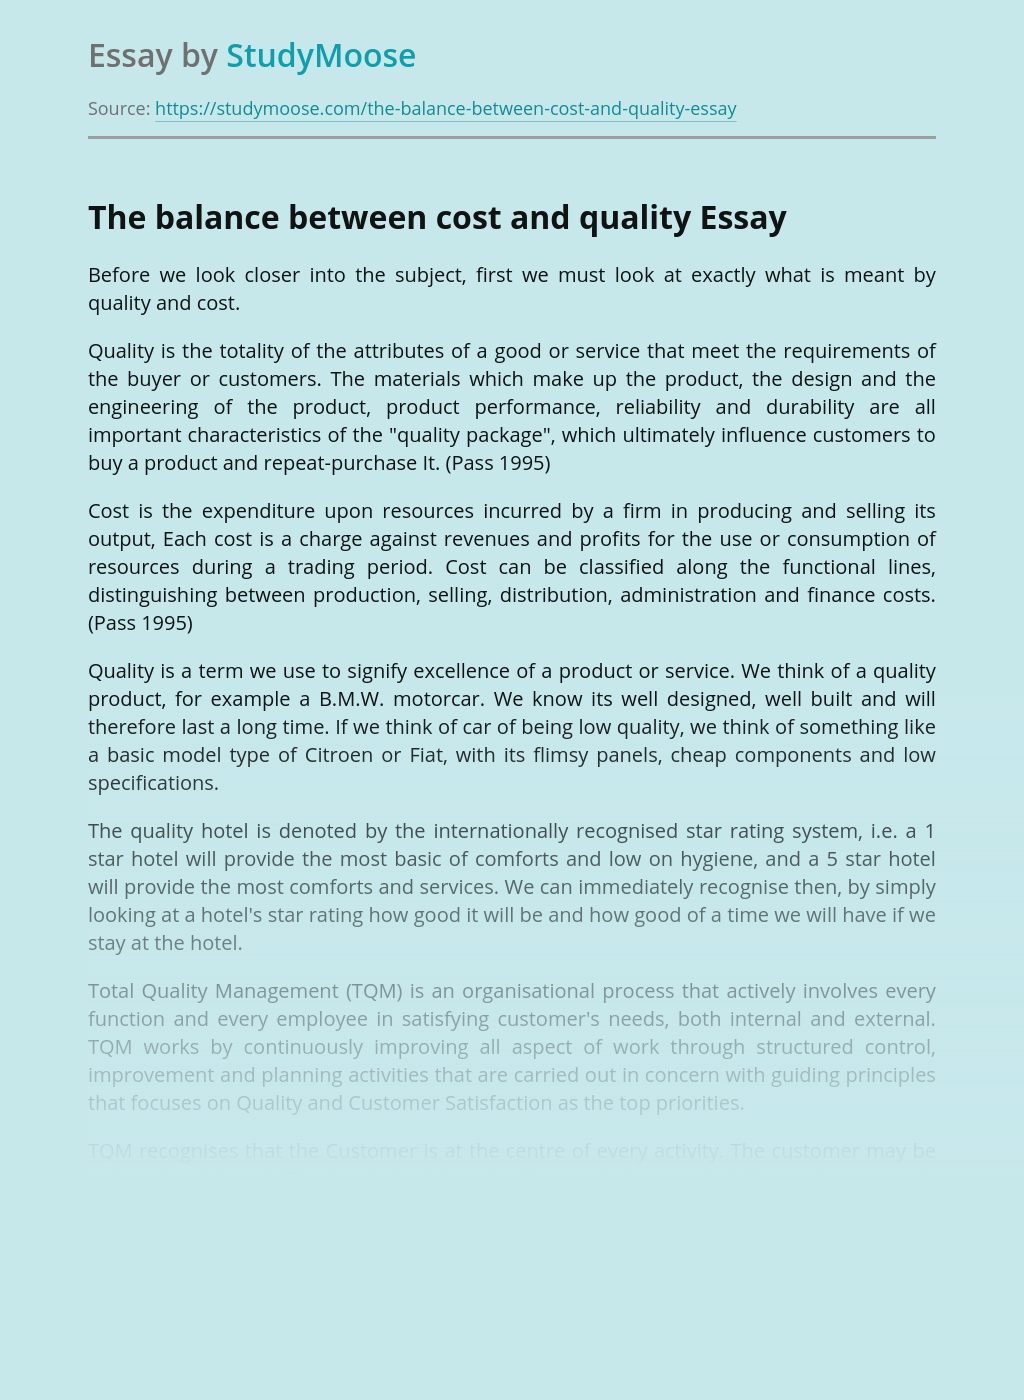 The Balance Between Cost and Quality Of Product